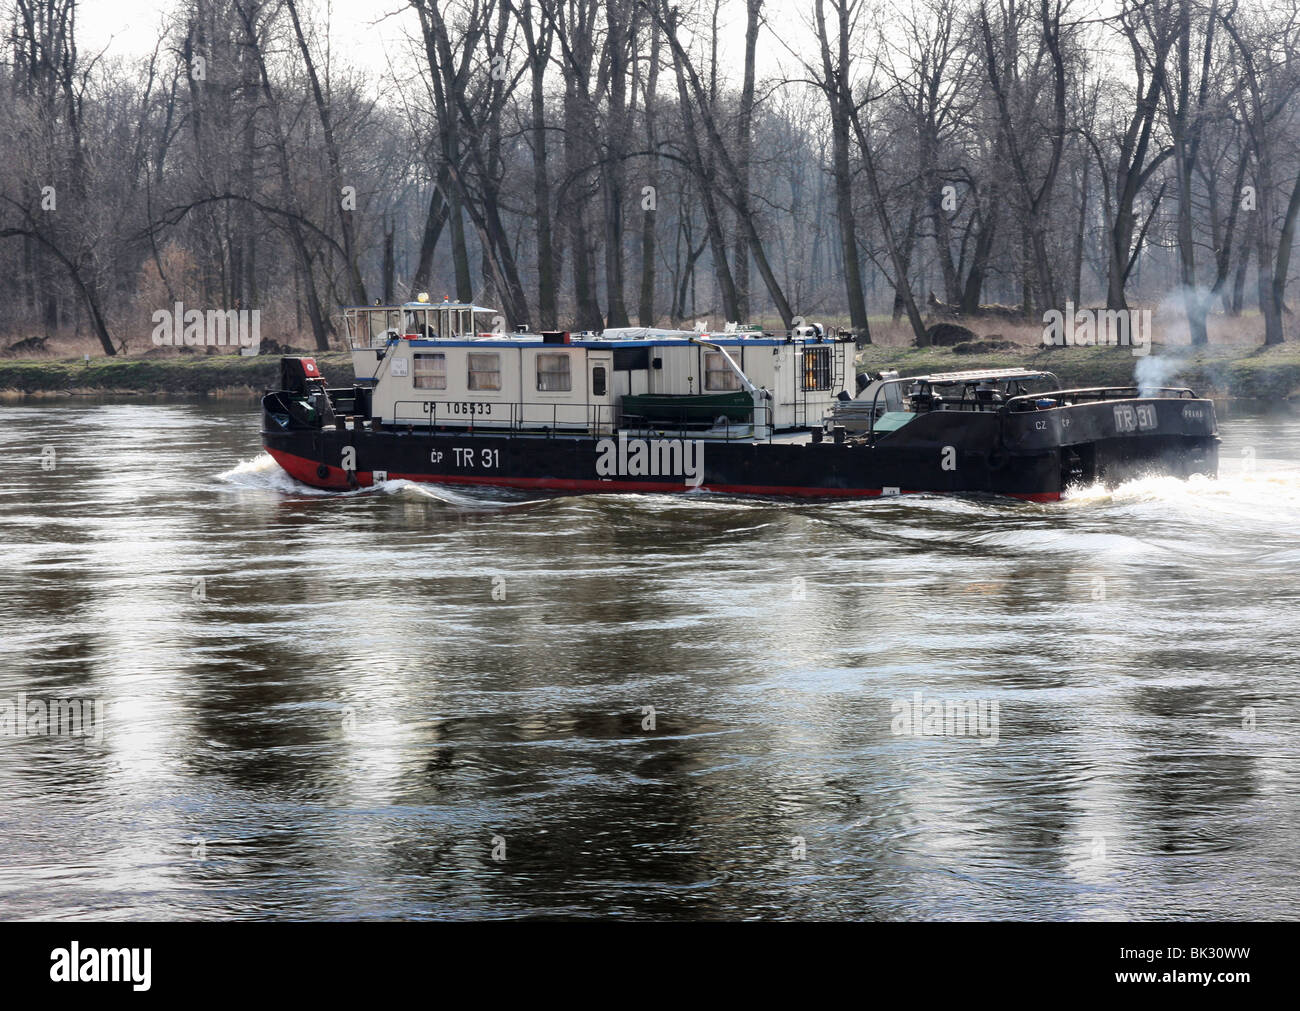 Towboat on the Labe River - Stock Image